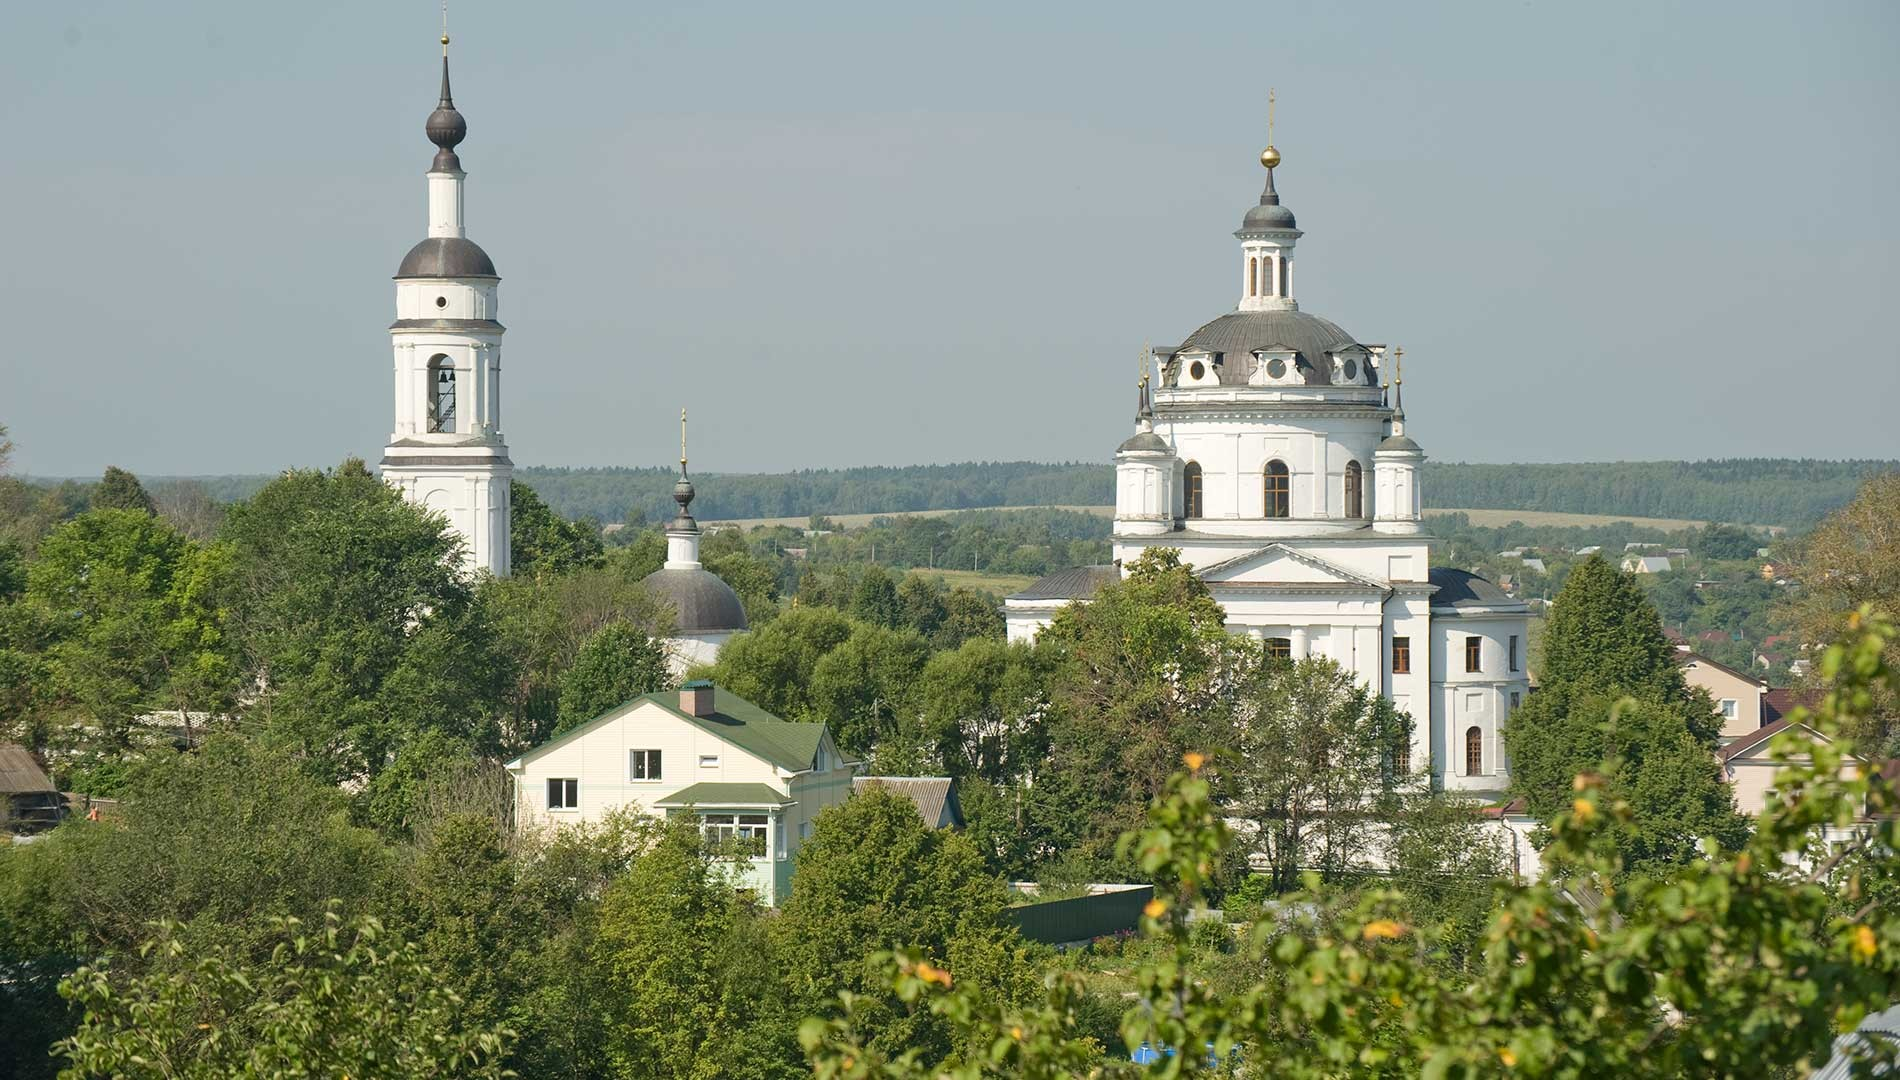 Maloyaroslavets. St. Nicholas-Chernoostrovsky Convent. Bell tower & Cathedral of St. Nicholas, south view. August 7, 2016